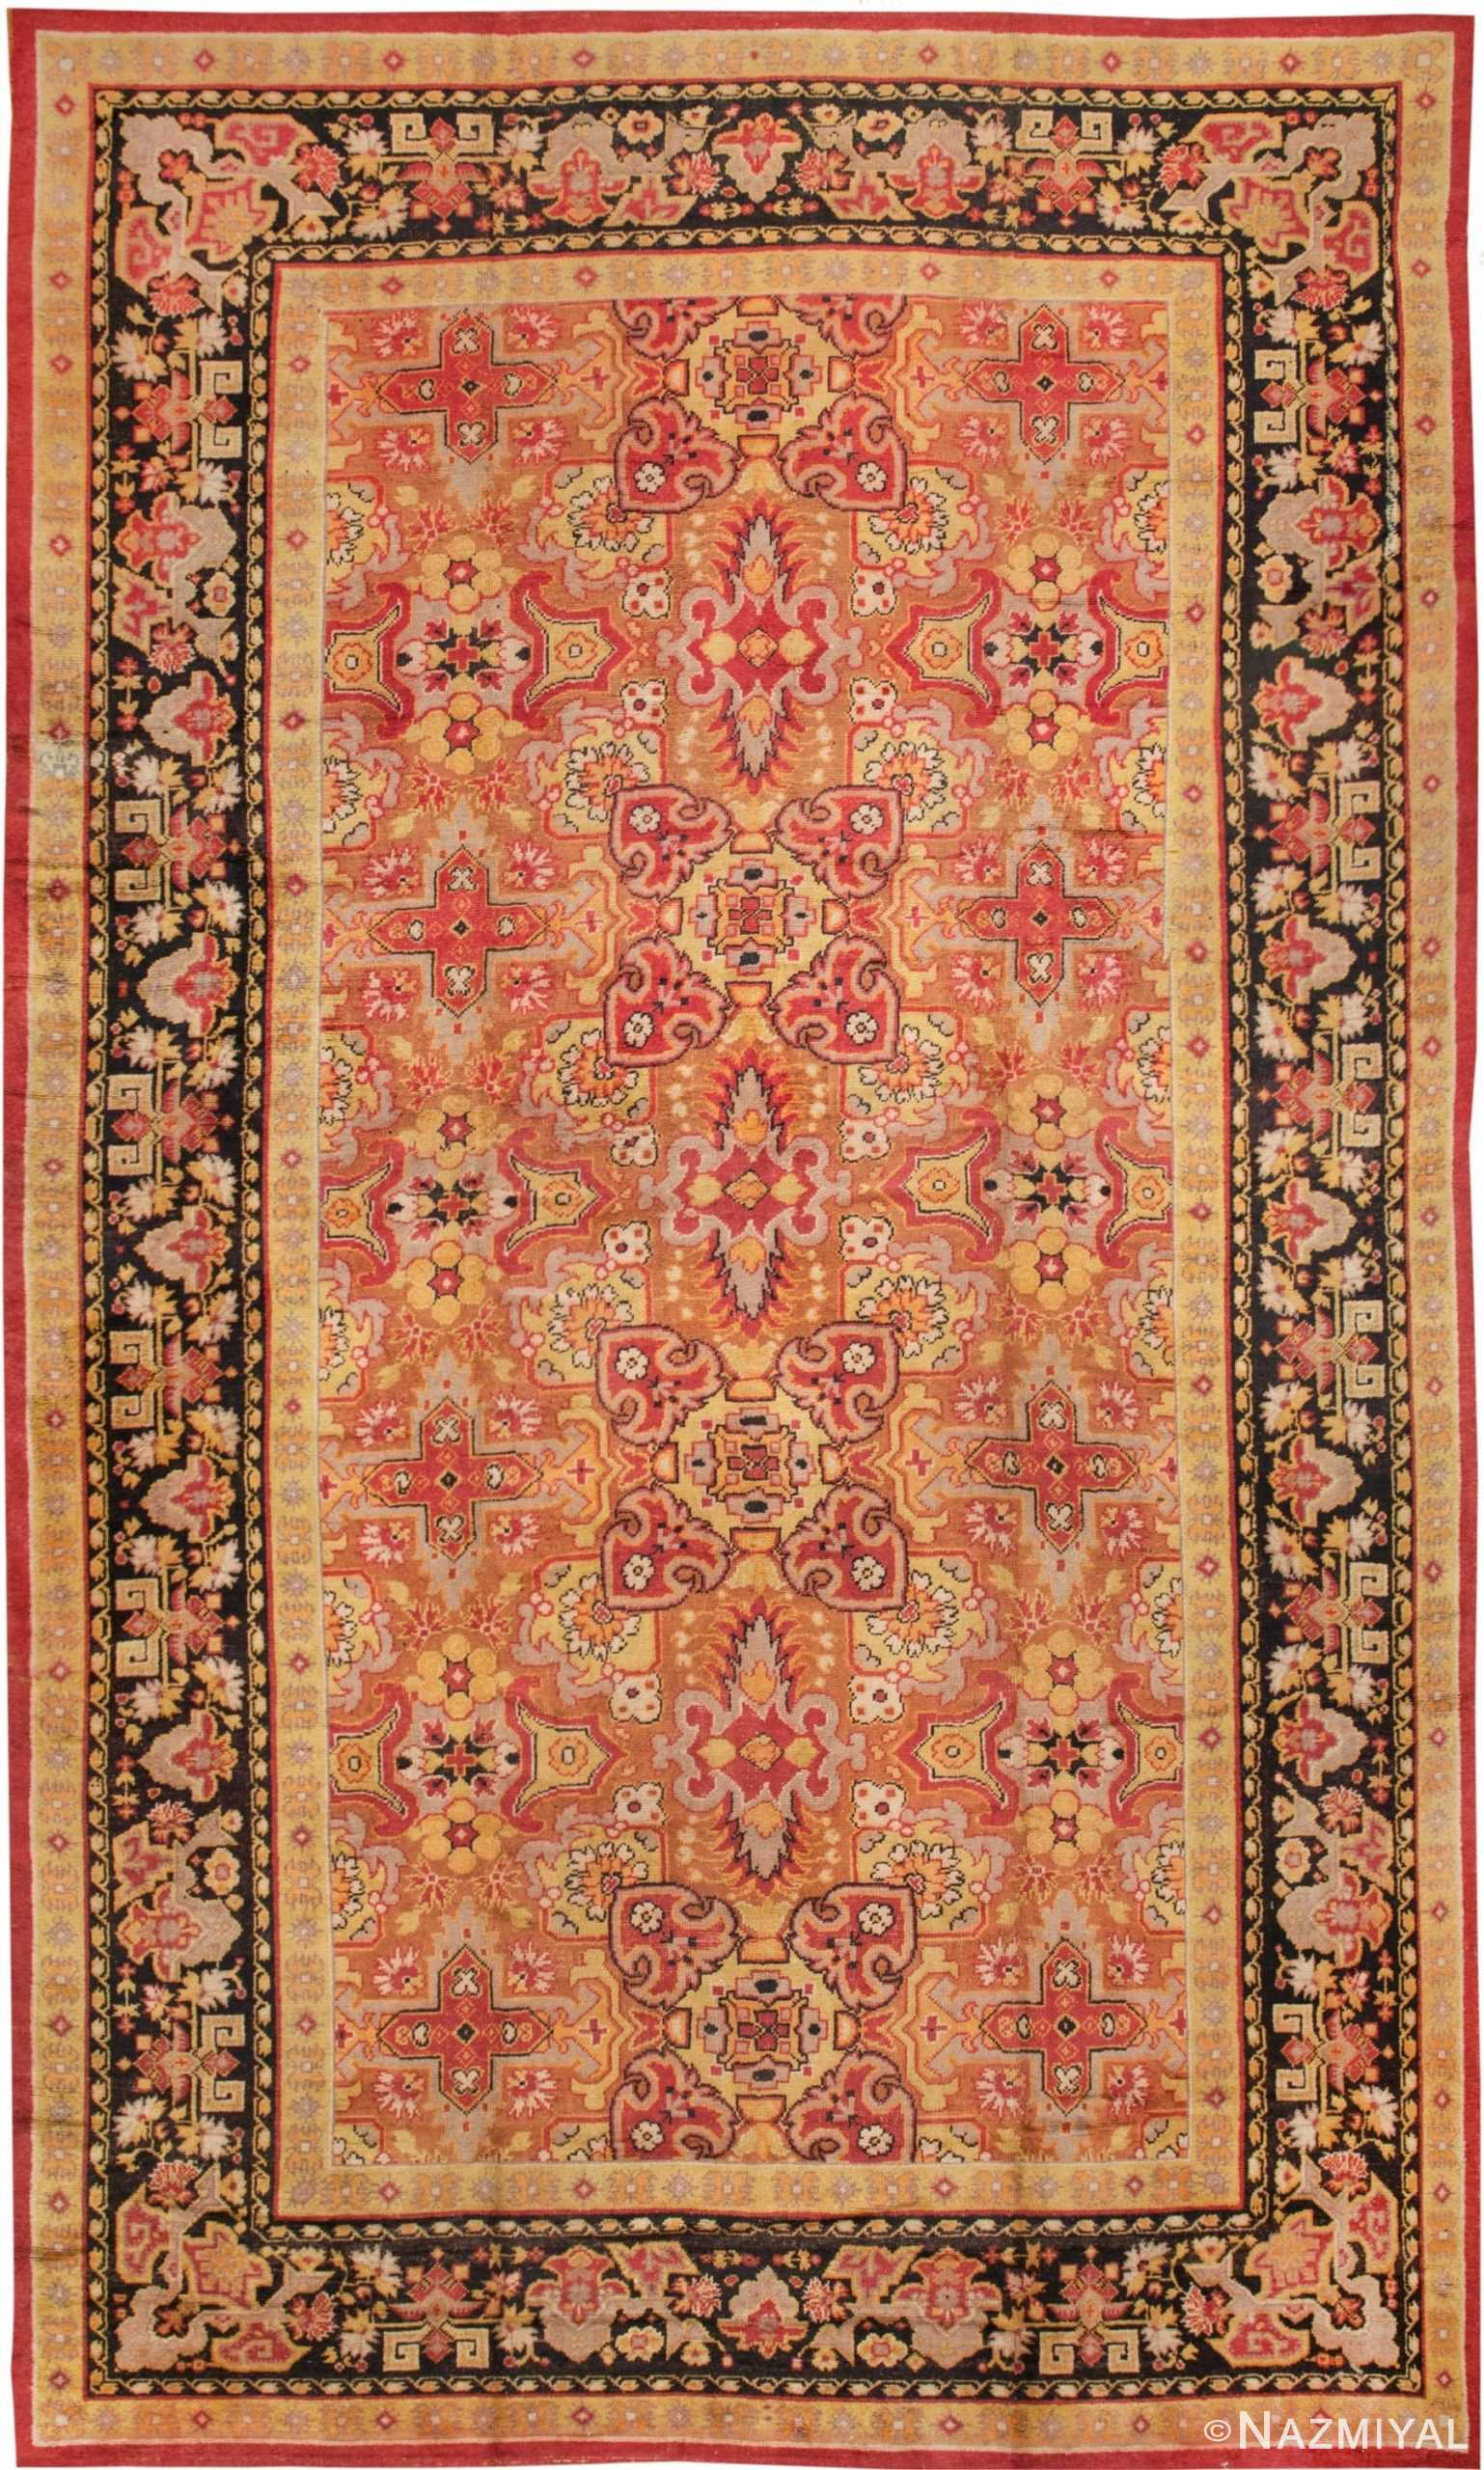 Art Deco Rugs Antique Deco Rugs And Carpets By Nazmiyal Nyc